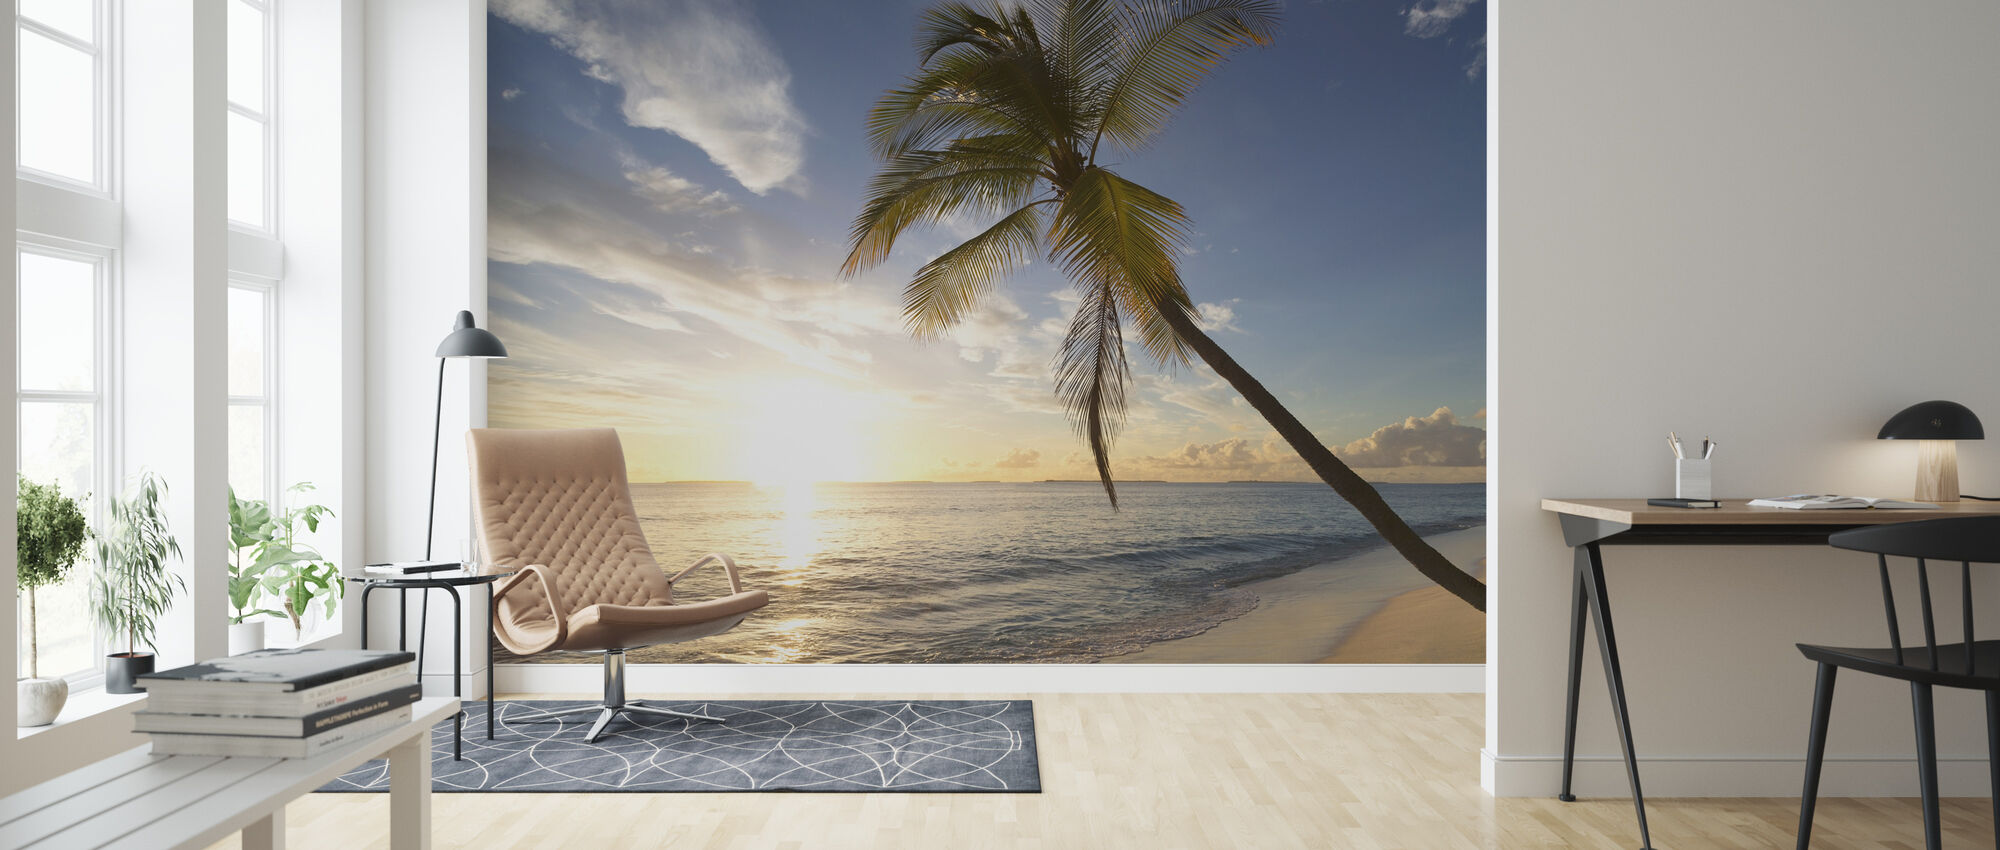 Tropical Sunset - Wallpaper - Living Room